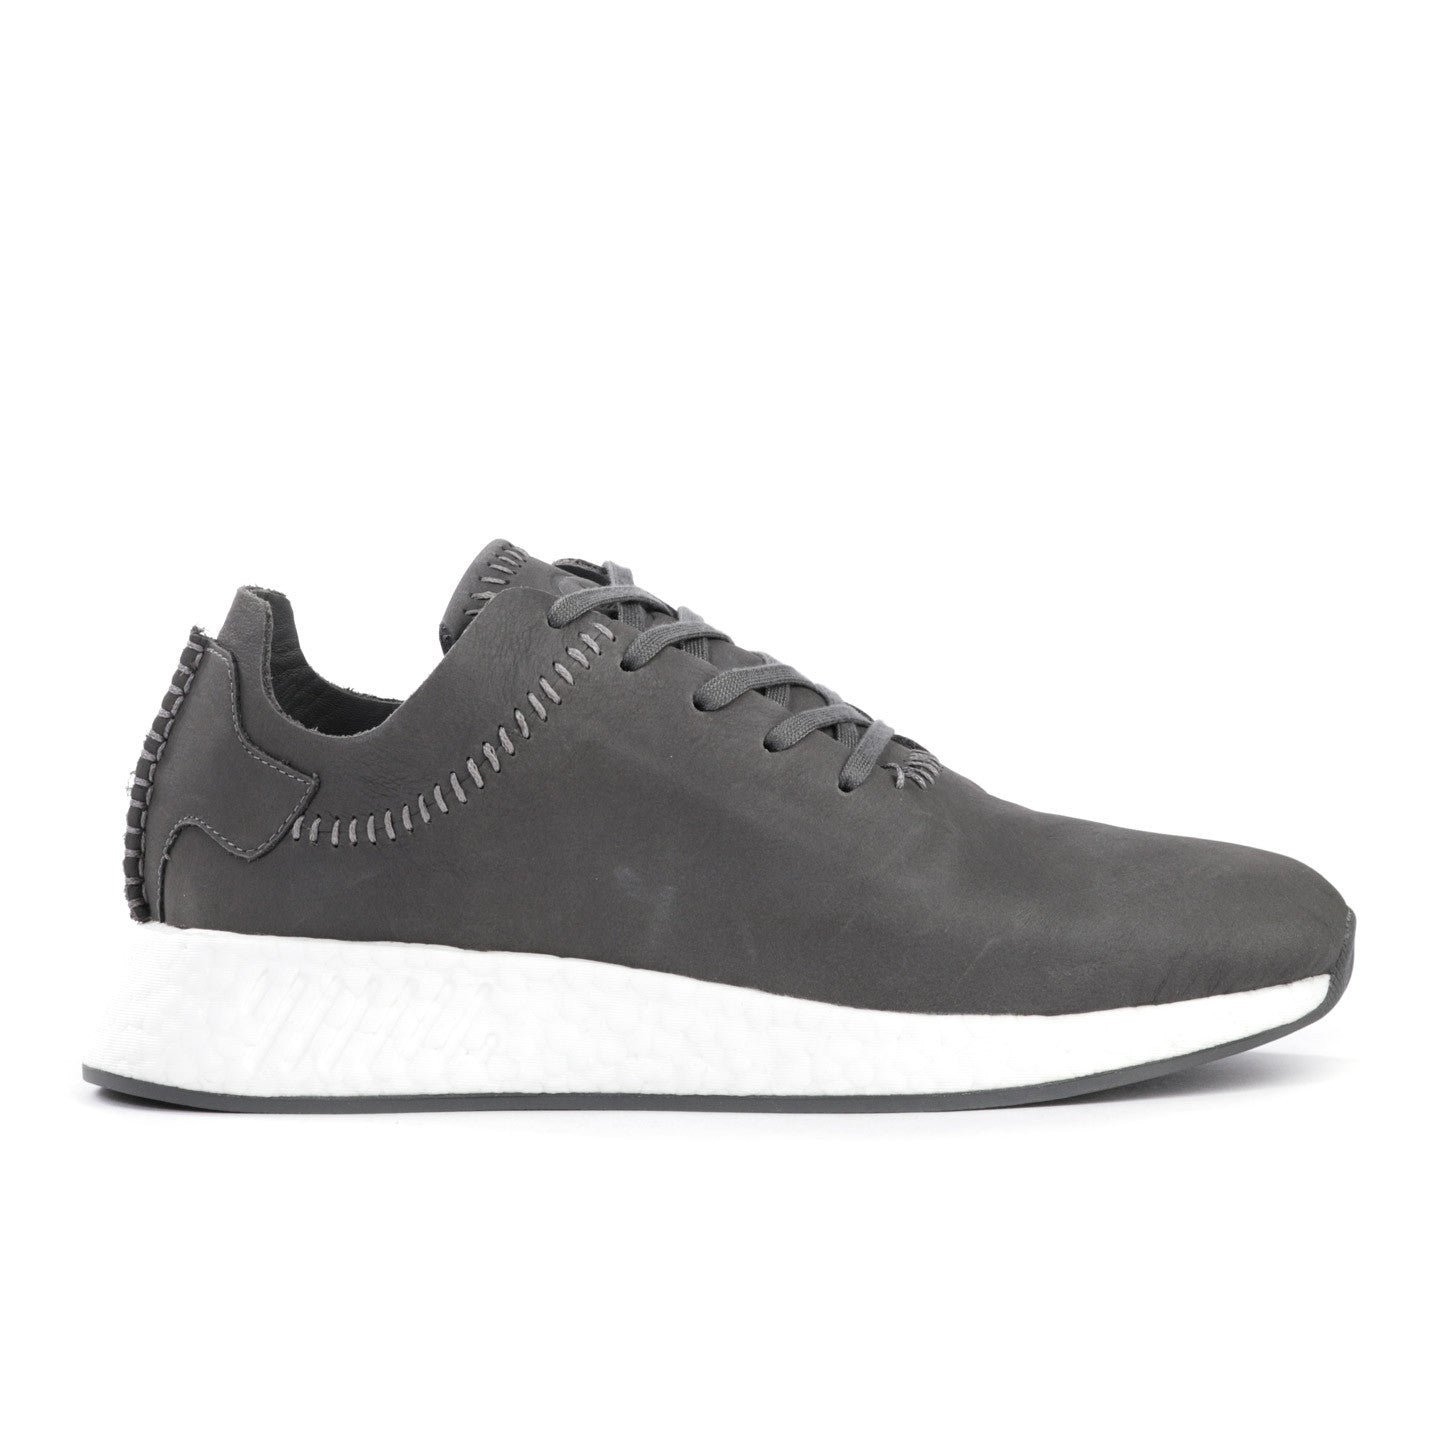 uk availability 0069b b34d7 ADIDAS ORIGINALS BY WING + HORNS NMD R2 LEATHER ASH GREY